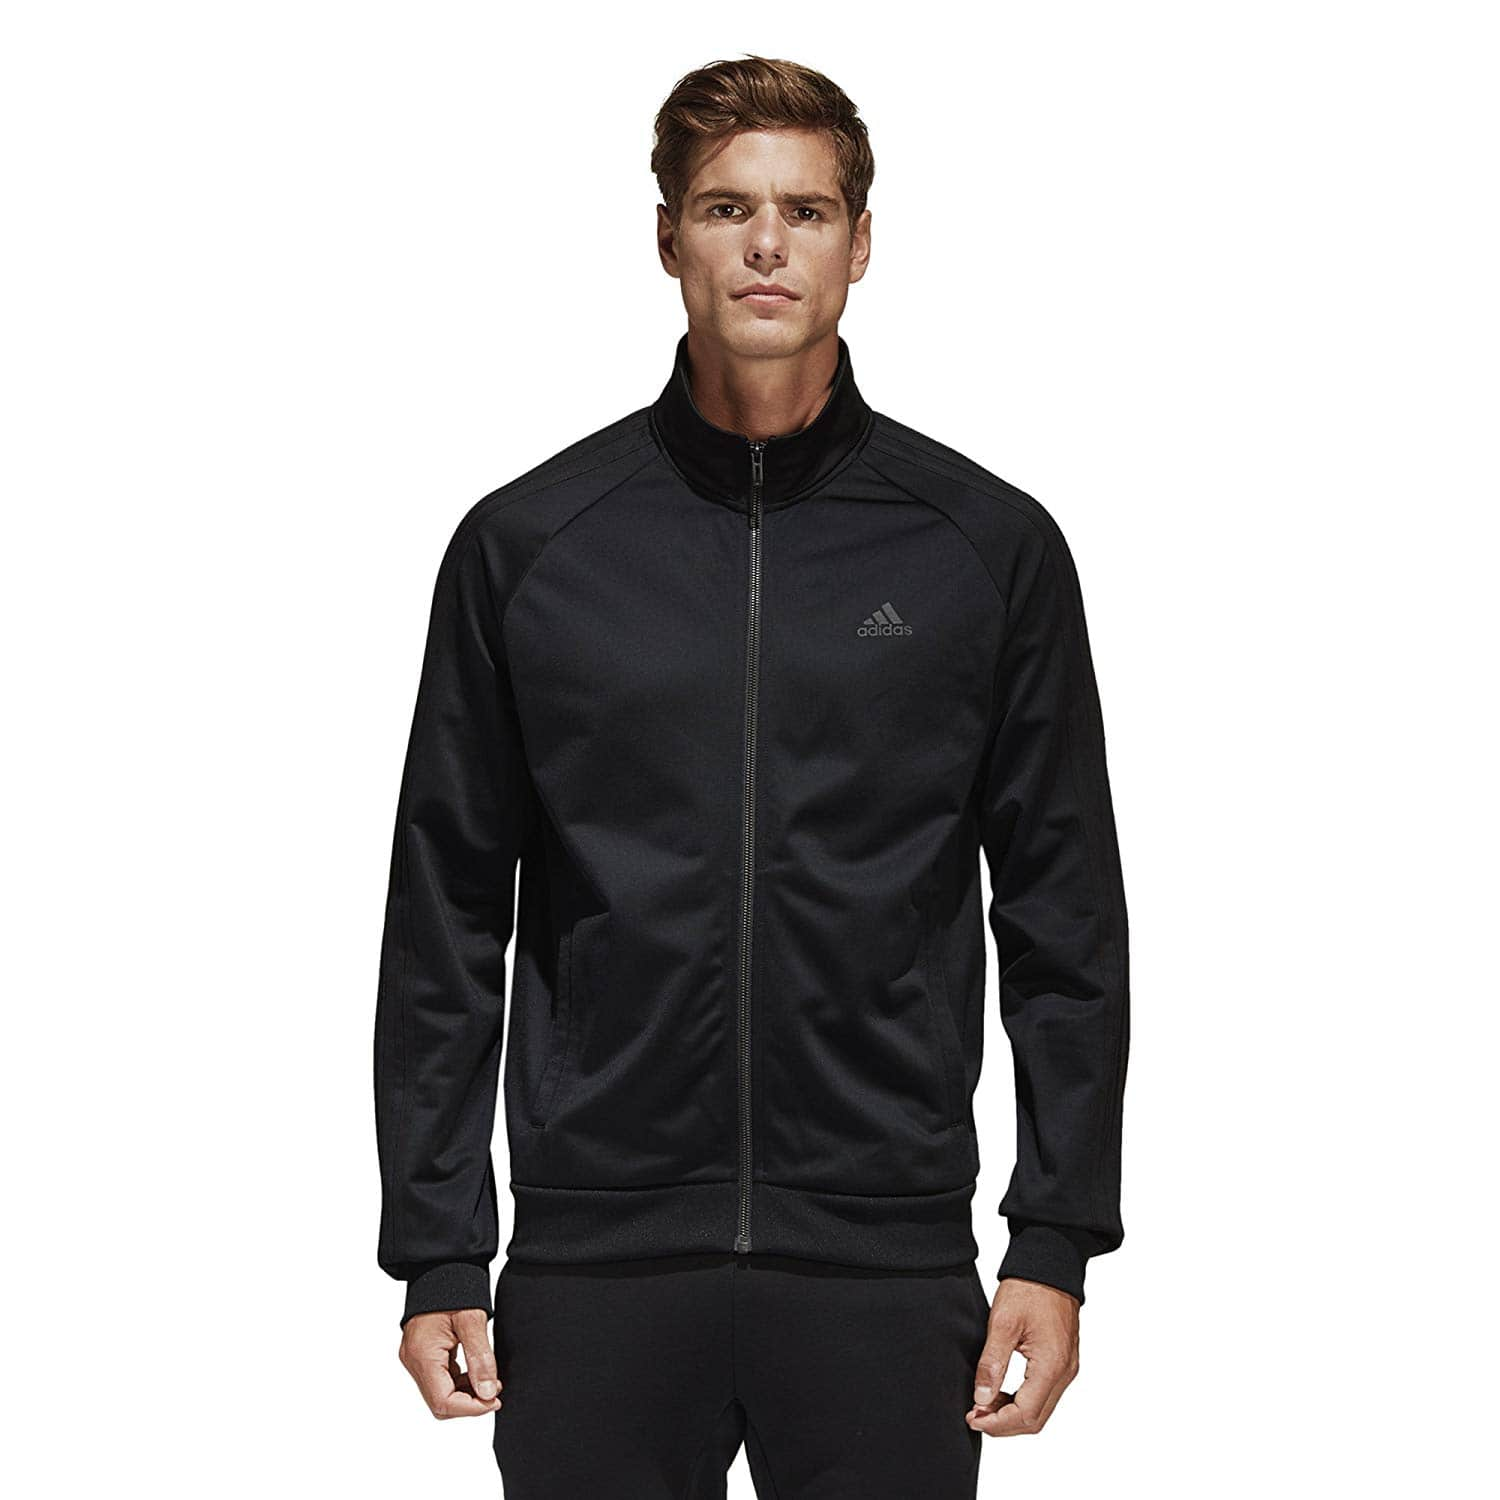 aabe099cf3d4 adidas Men's Essentials 3-Stripe Tricot Track Jacket - Select Colors ...